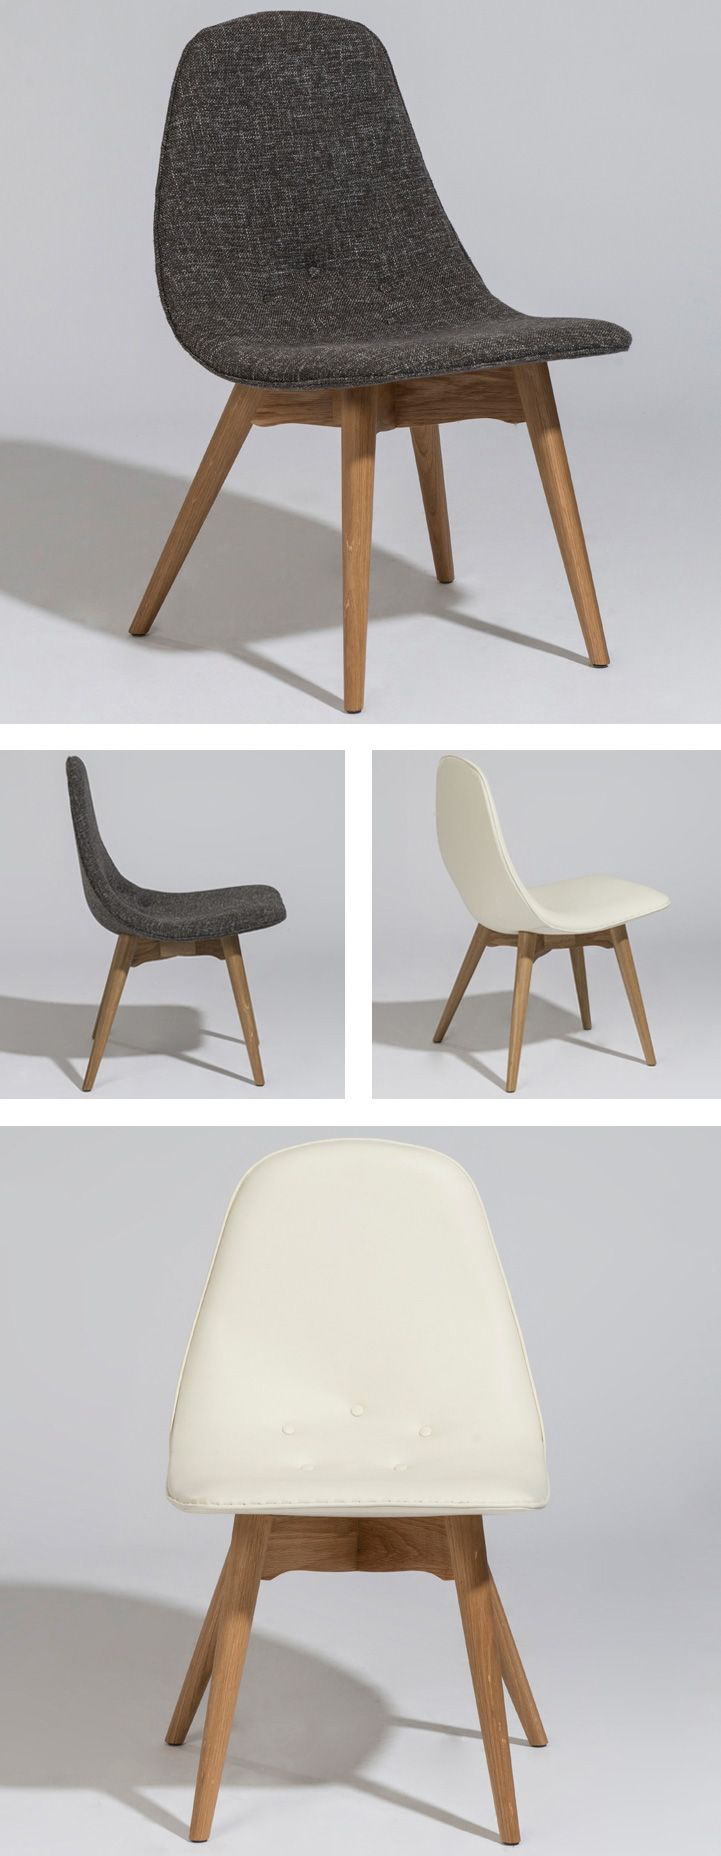 Contour Dining Chair (Grant Featherston) office chair